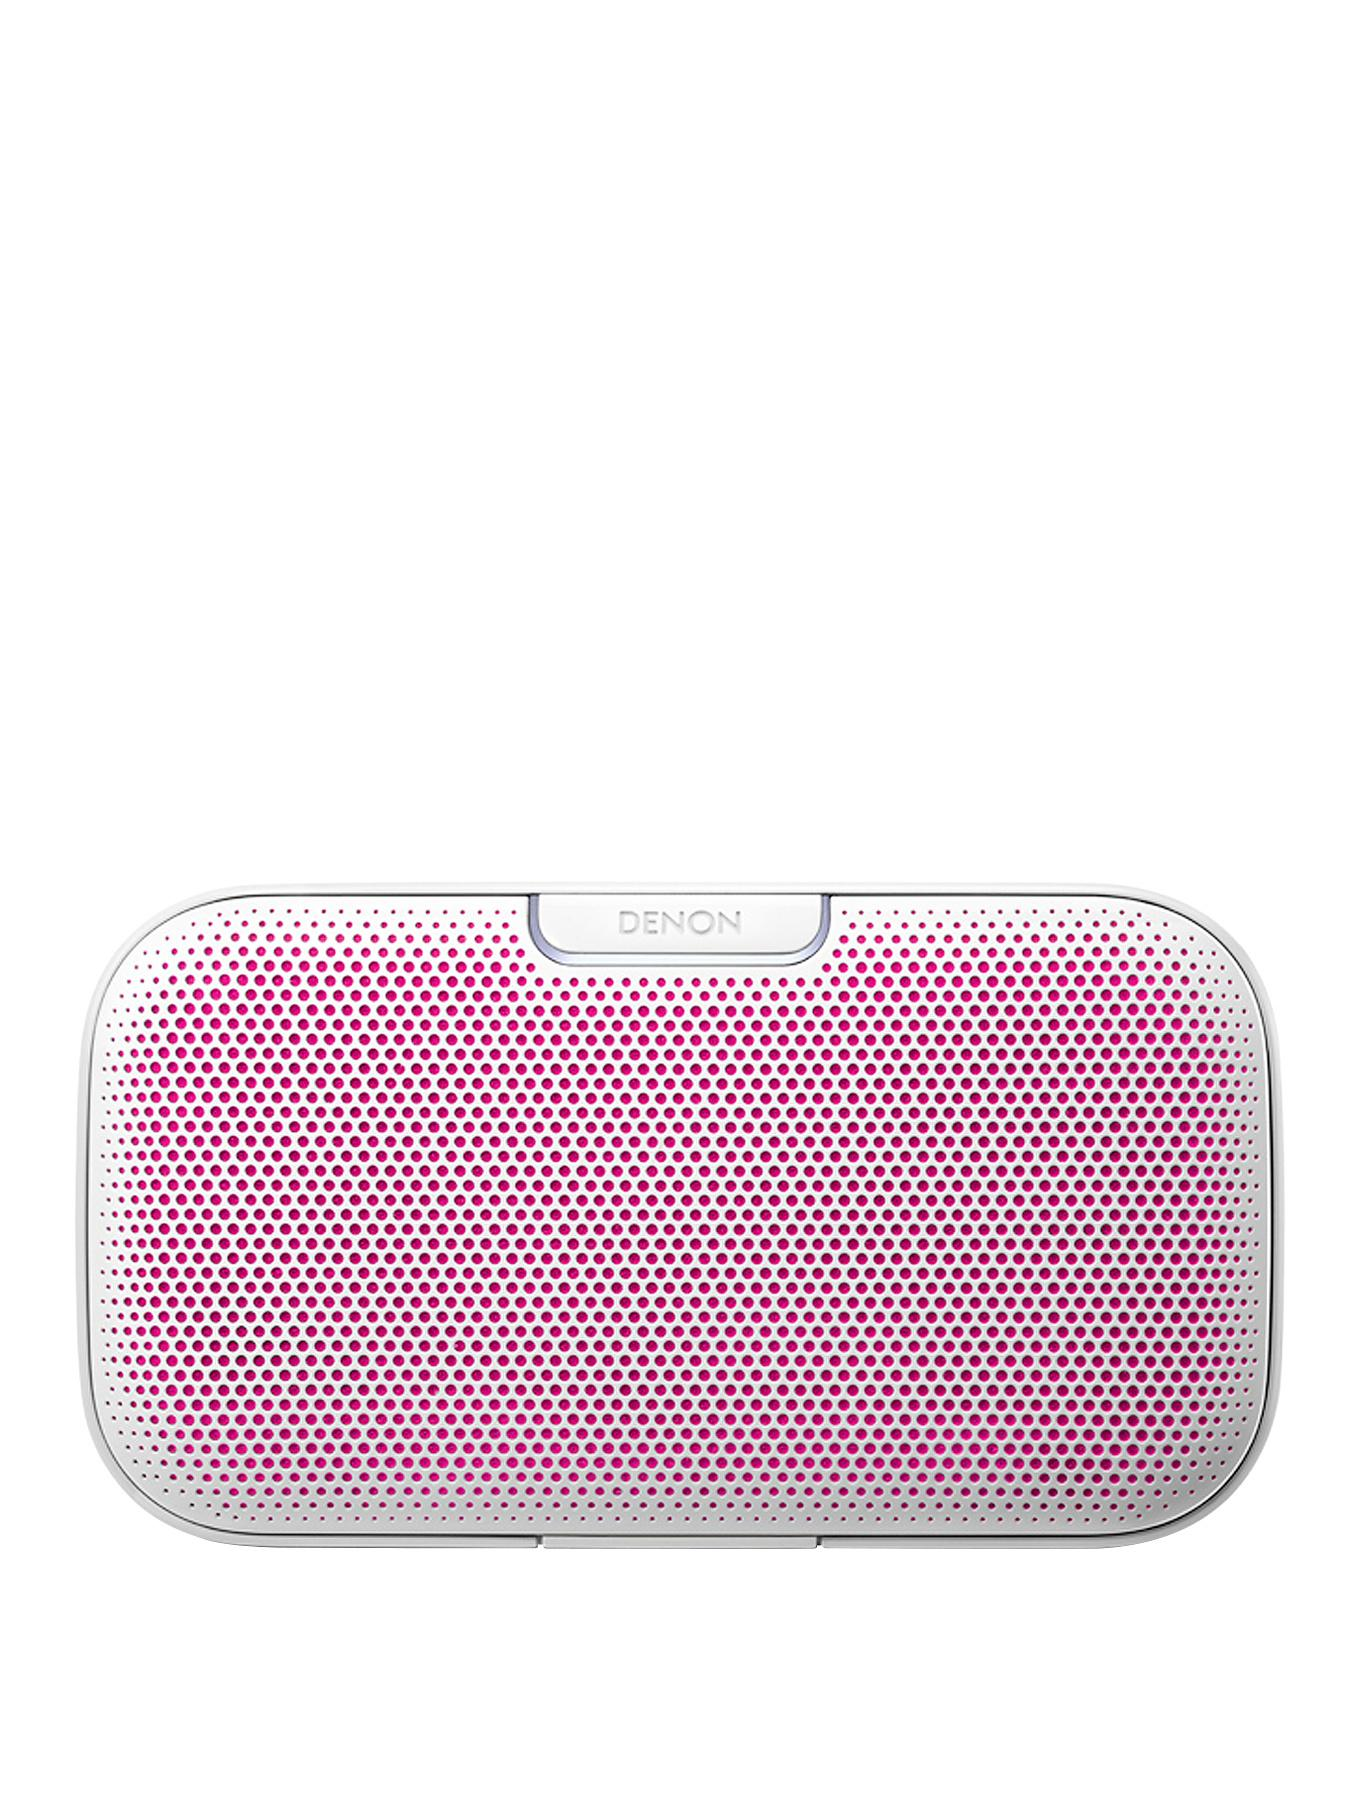 Denon Envaya Bluetooth Speaker - White - White, White